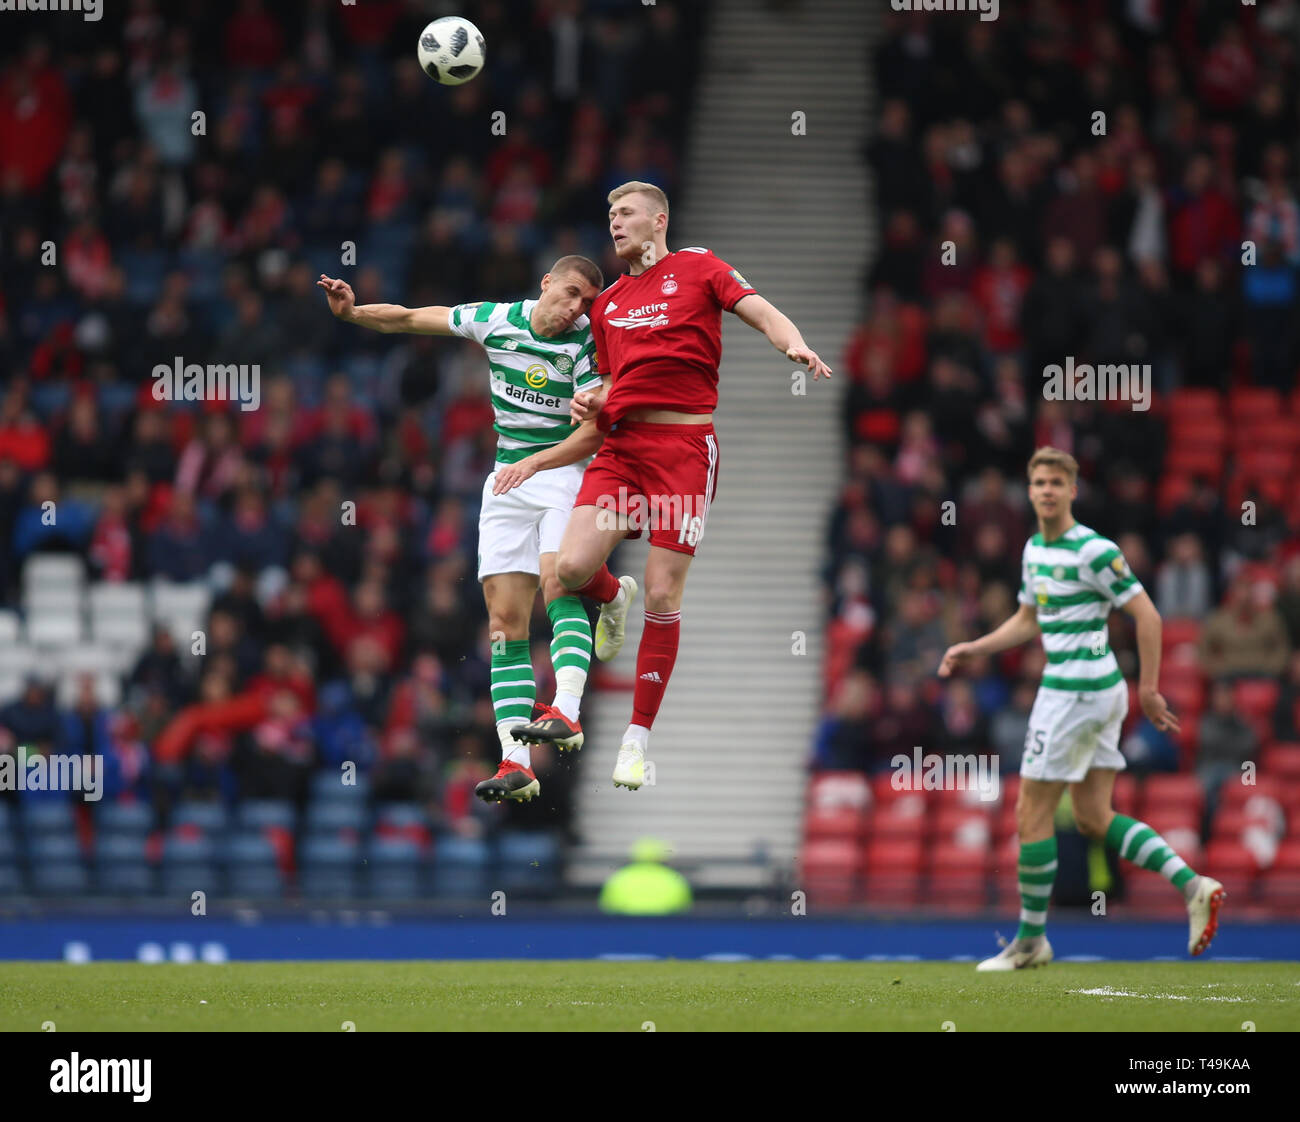 Hampden Park, Glasgow, UK. 14th Apr, 2019. Scottish Cup football, semi final, Aberdeen versus Celtic; Jozo Simunovic of Celtic and Sam Cosgrove of Aberdeen compete for the ball in the air Credit: Action Plus Sports/Alamy Live News - Stock Image